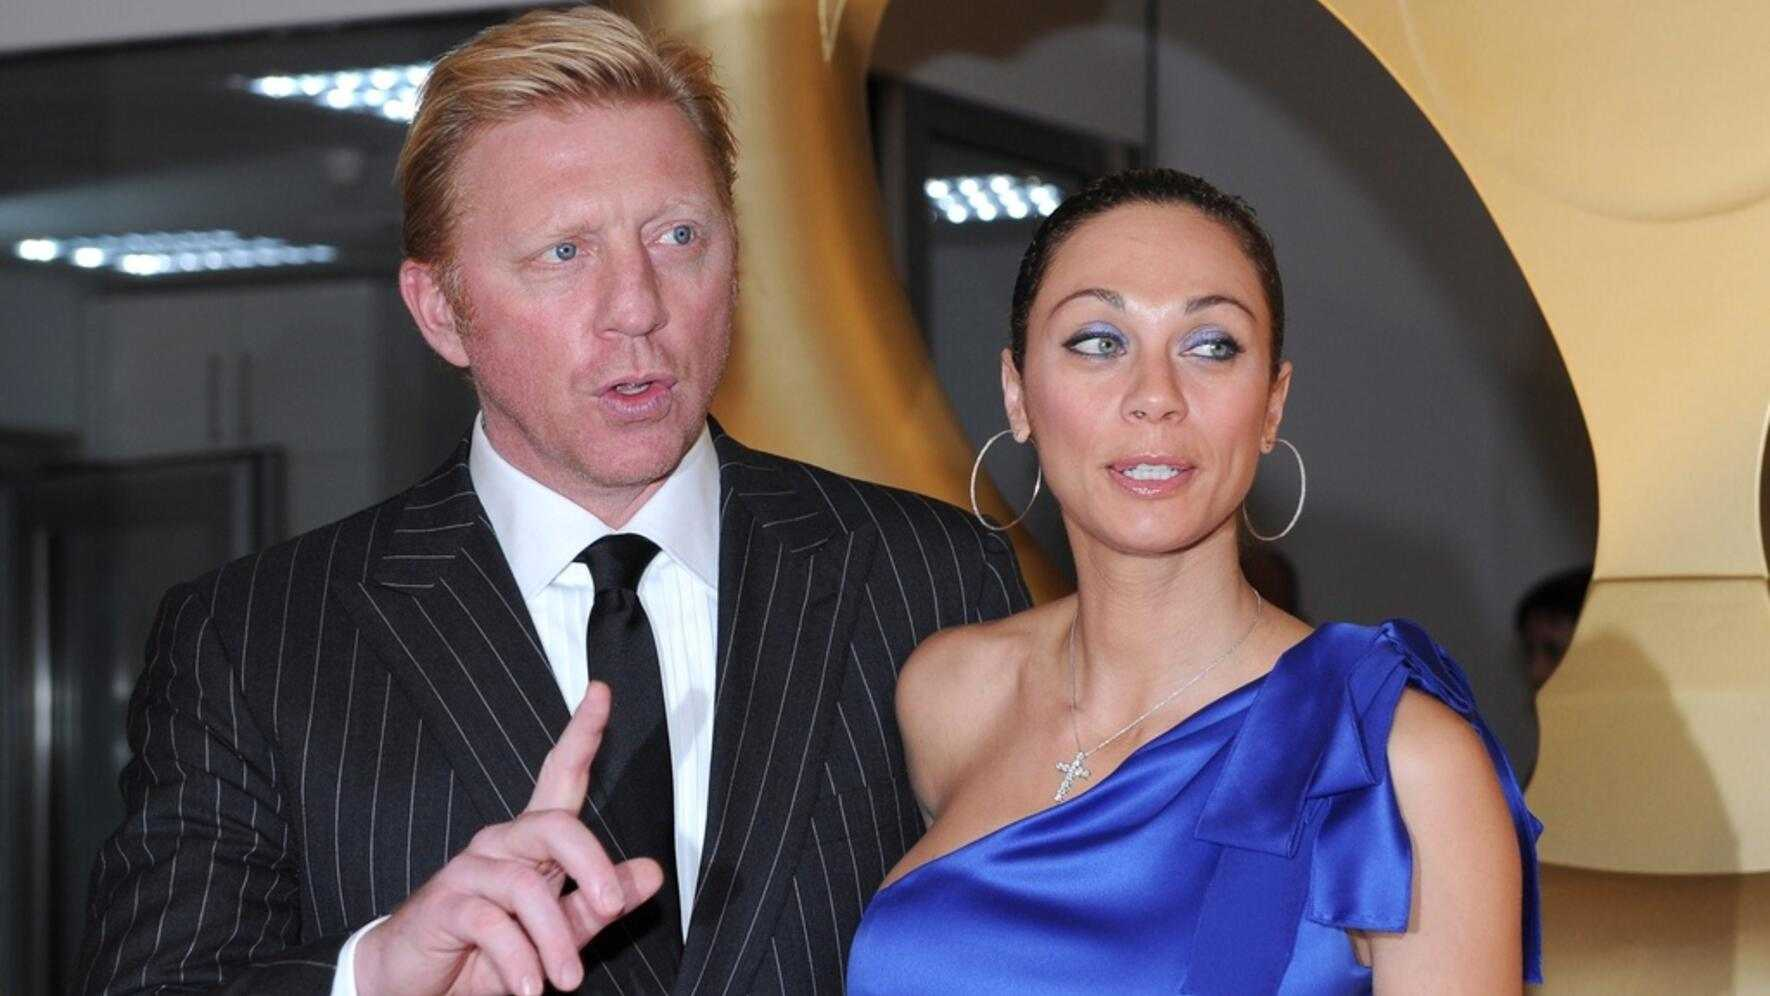 Boris Becker Facelifting